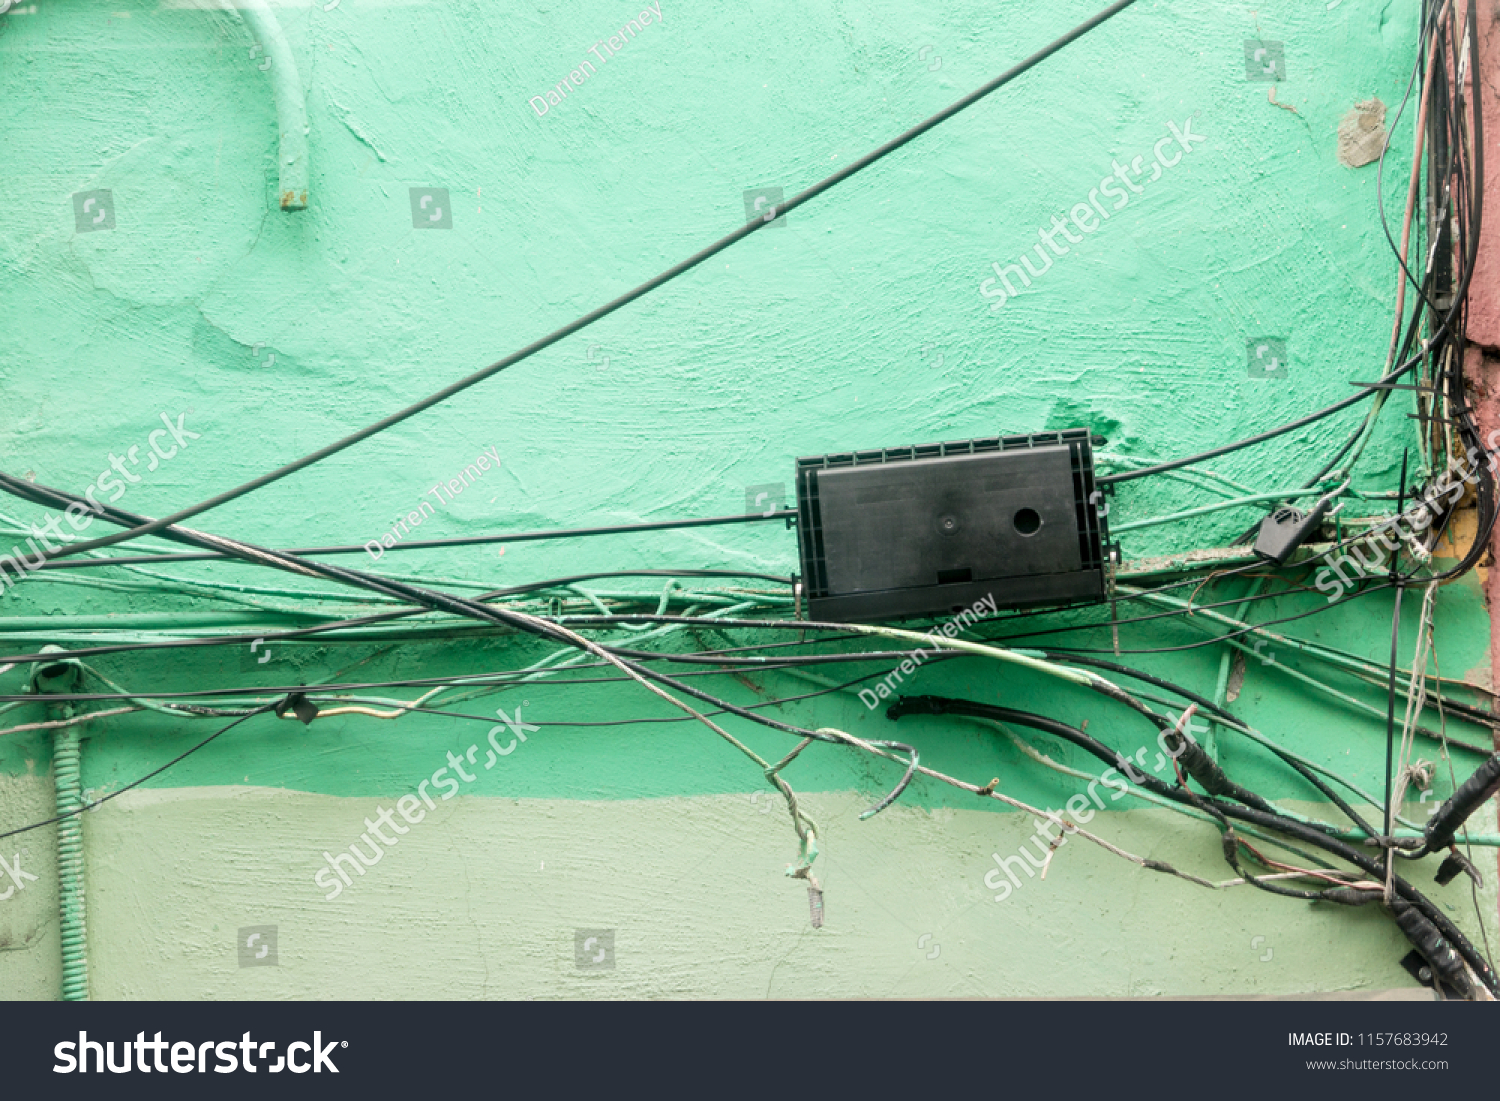 hight resolution of bad electrical wiring which looks messy and dangerous